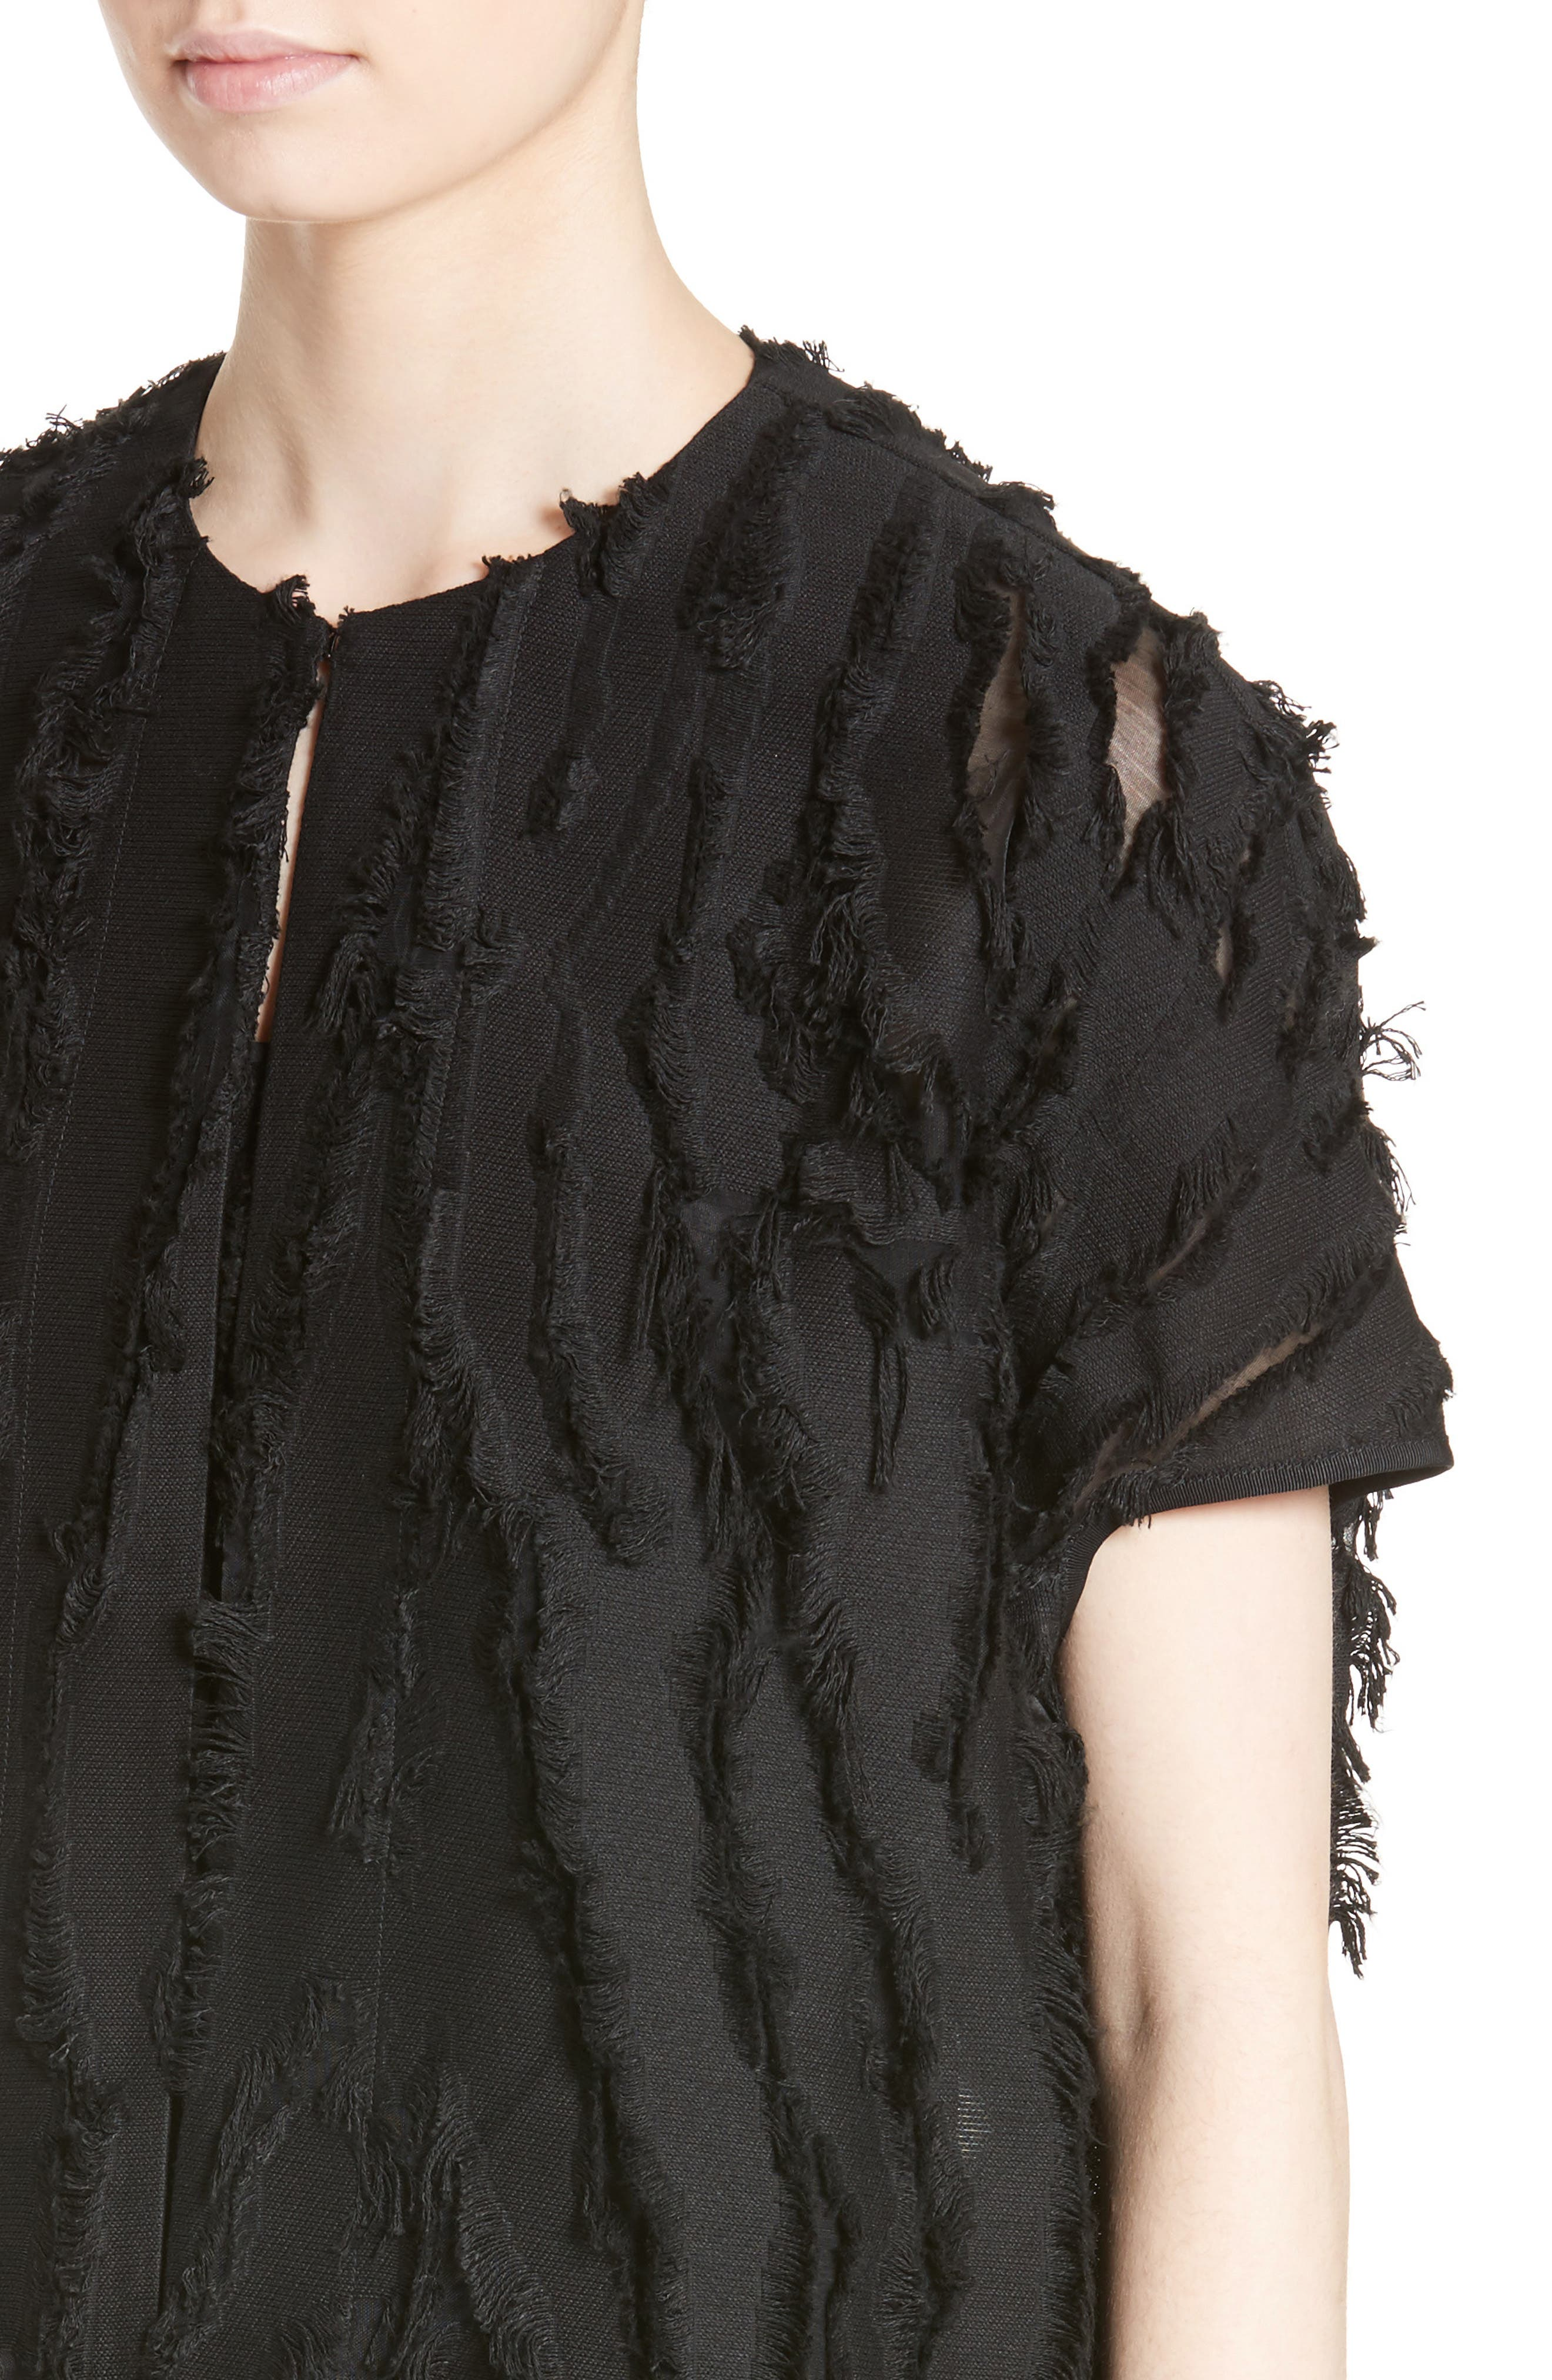 Koya Fringe Royal Shrug,                             Alternate thumbnail 4, color,                             001